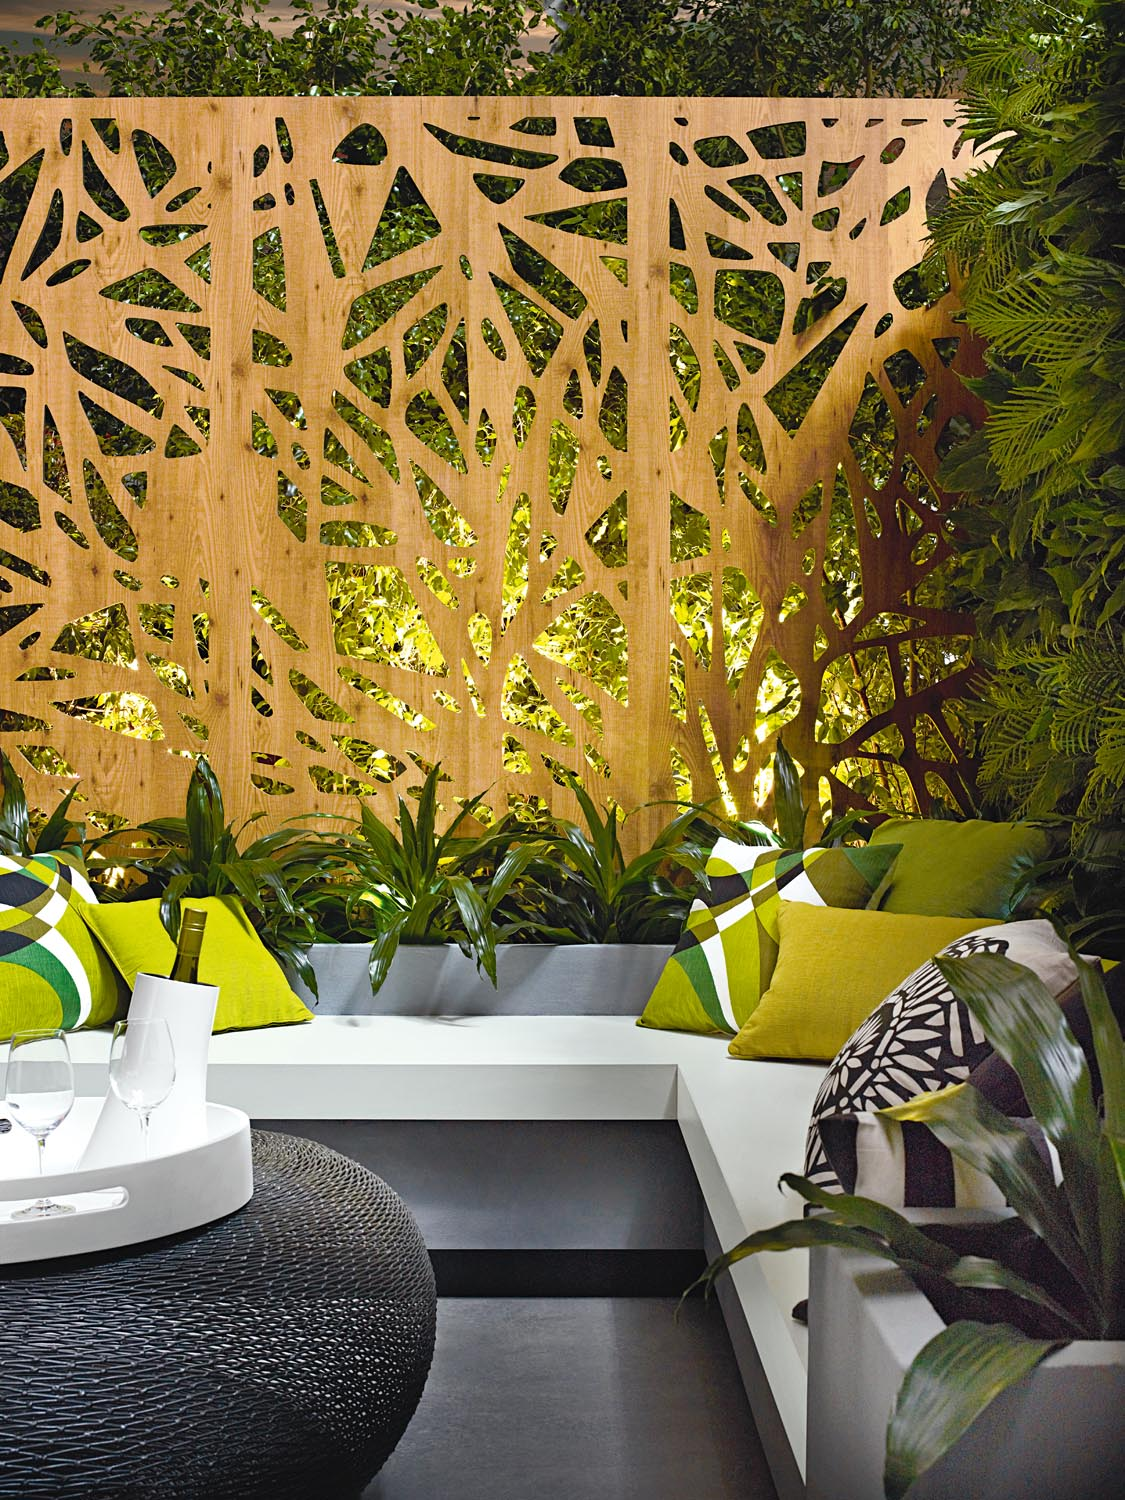 We love: This gorgeous outdoor entertaining area, complete with decorative metal screening